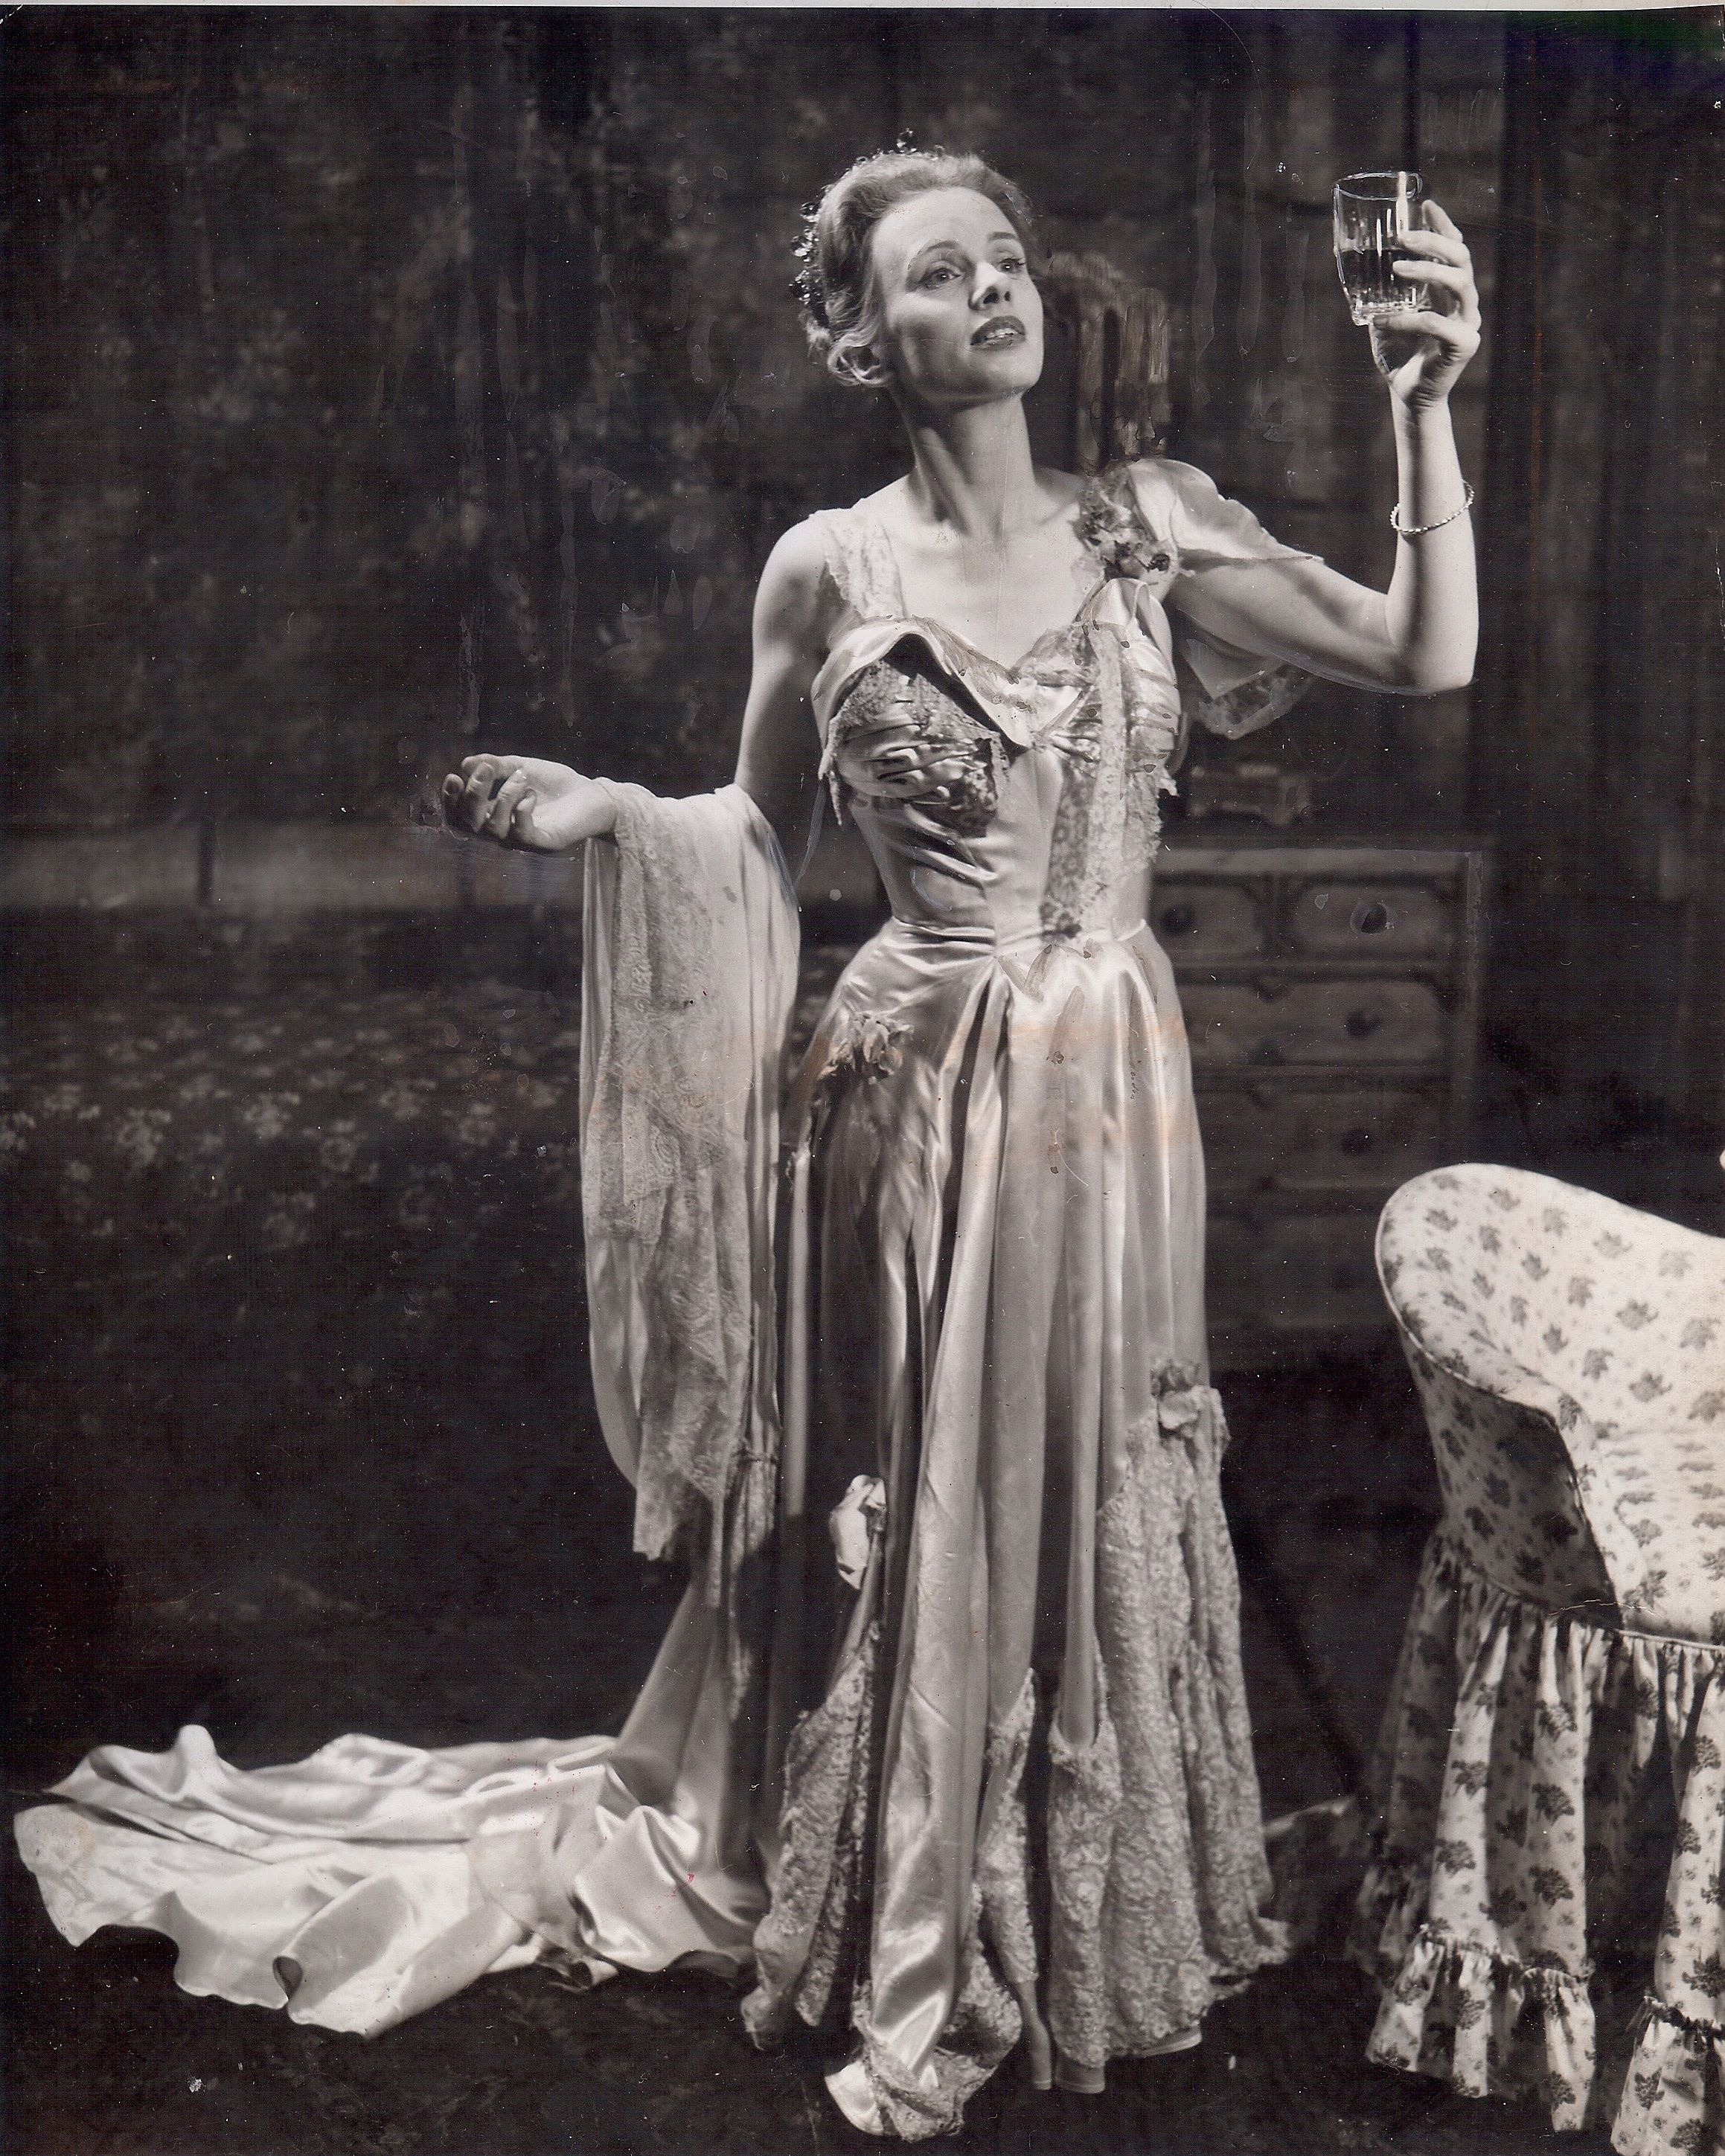 blanche dubois vivien leigh in a streetcar d desire a man blanche dubois vivien leigh in a streetcar d desire a man don t want anything they get too easy quote moviequote superguide